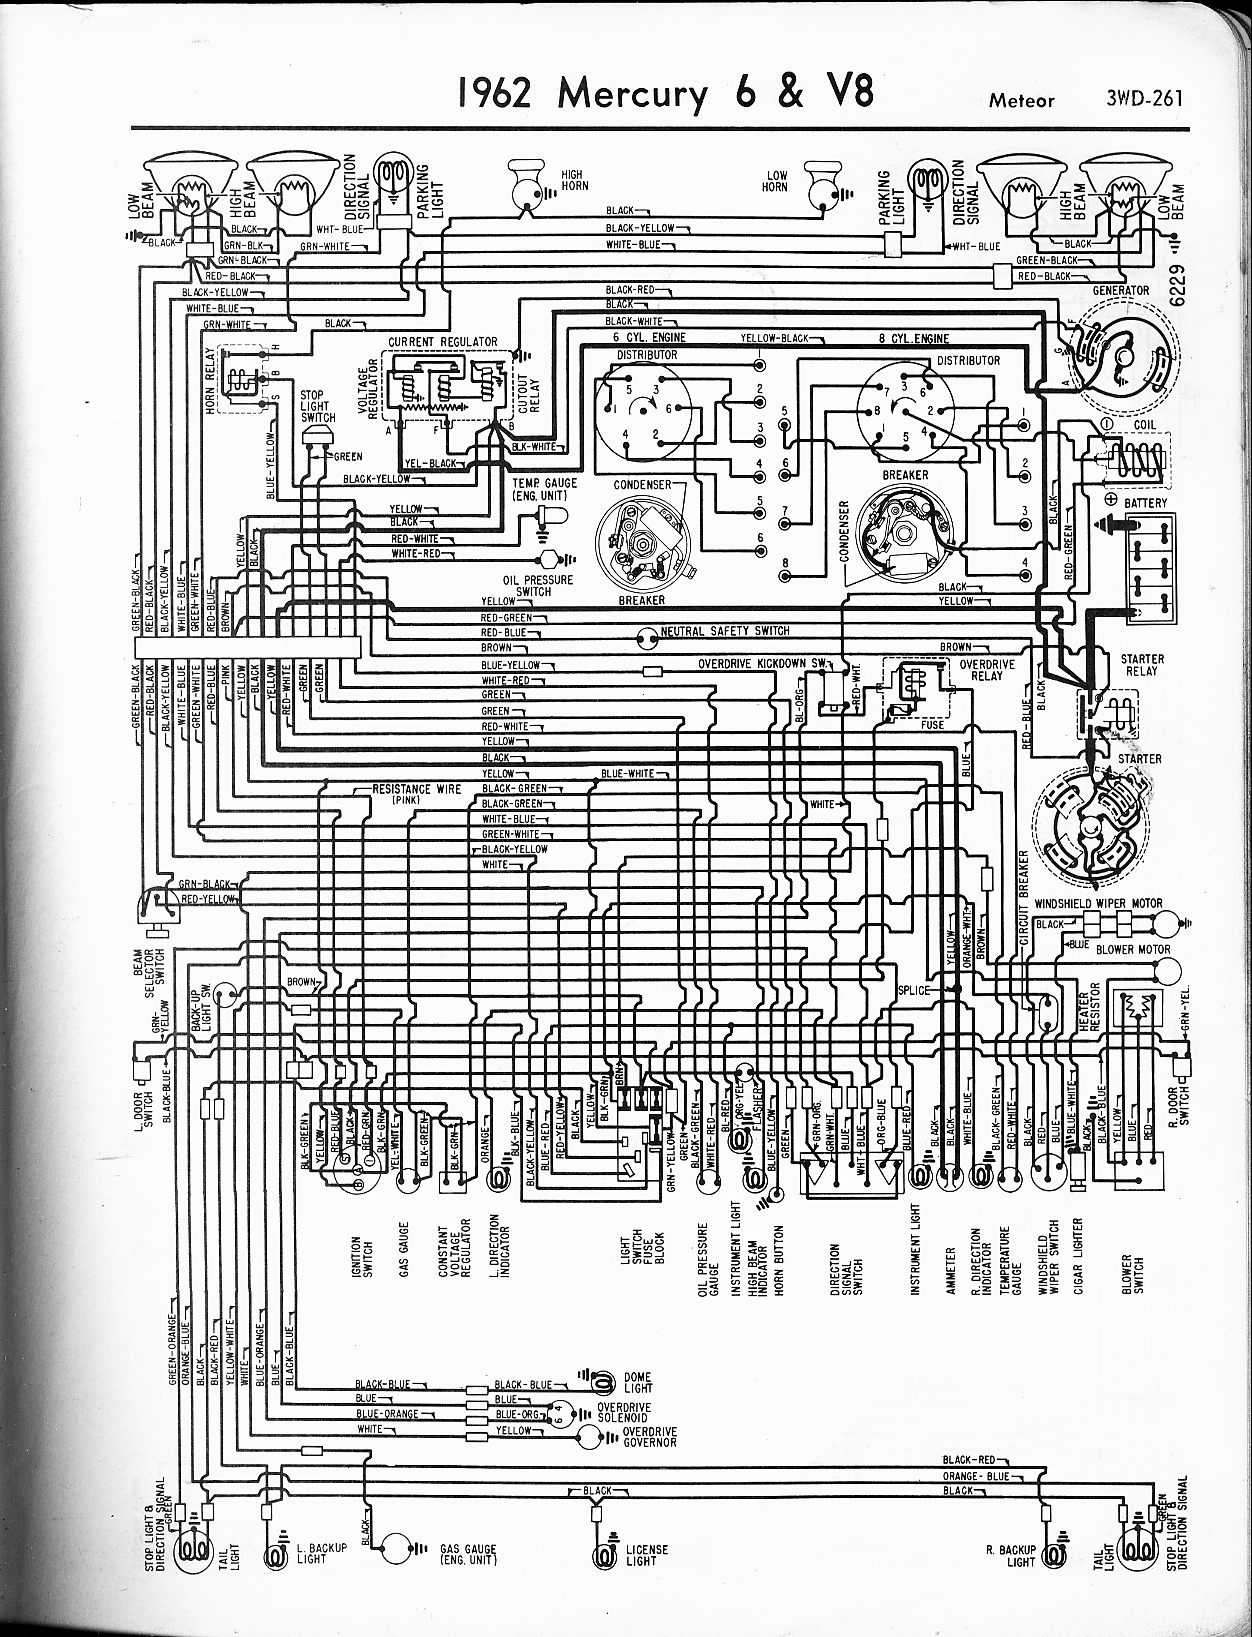 Mercury Wiring Diagrams The Old Car Manual Project Original Diagram Of 1965 Comet 1962 6 V8 Meteor